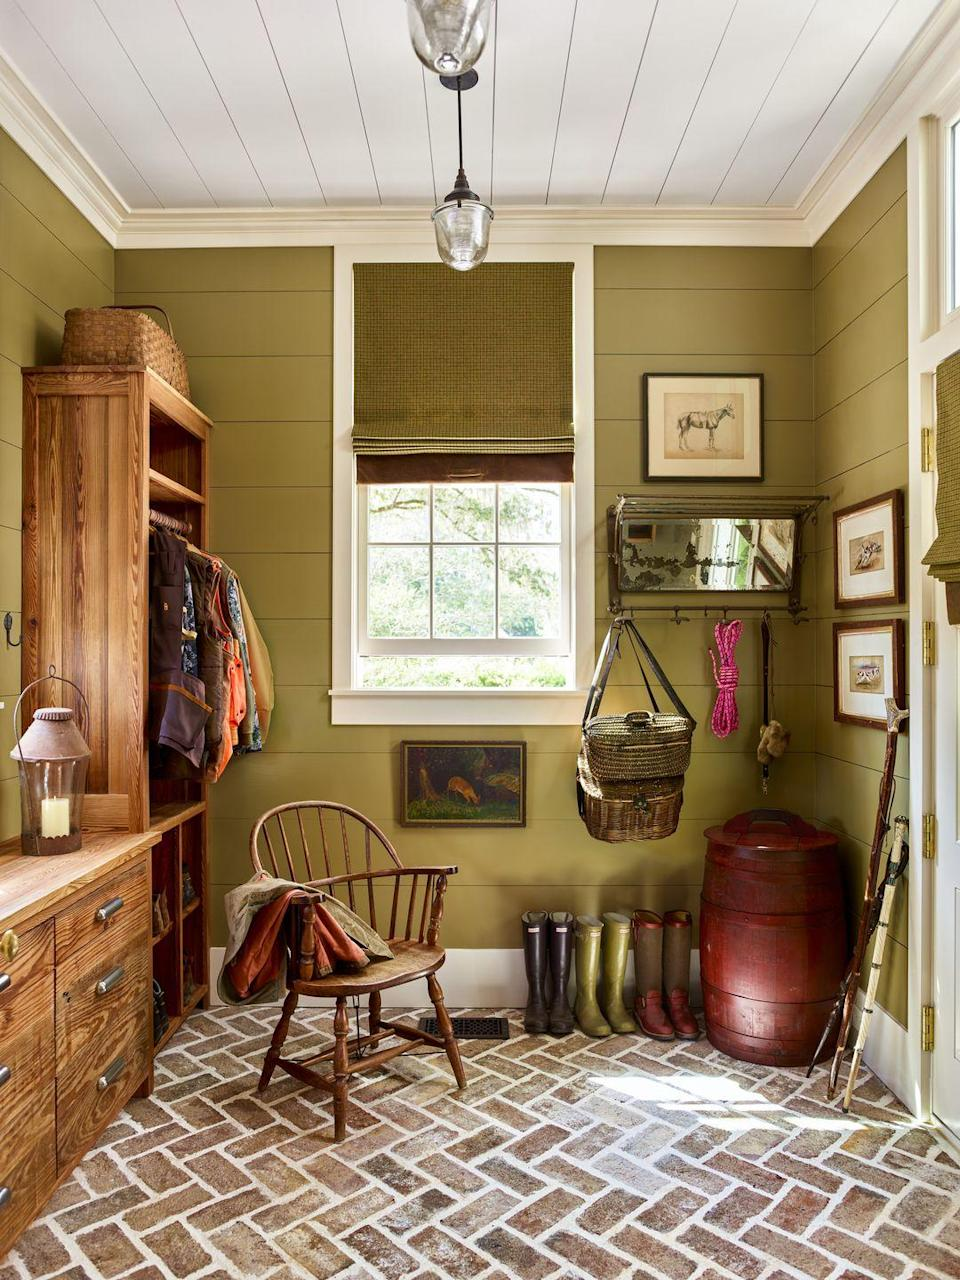 """<p>With floors these gorgeous, the walls in this mini mudroom need to pack just as big of an impact. A soft olive green like <a href=""""https://www.sherwin-williams.com/homeowners/color/find-and-explore-colors/paint-colors-by-family/SW6705-high-strung"""" rel=""""nofollow noopener"""" target=""""_blank"""" data-ylk=""""slk:High Strung by Sherwin-Williams"""" class=""""link rapid-noclick-resp"""">High Strung by Sherwin-Williams</a> sets the scene for a day full of fun outdoor activities.</p>"""